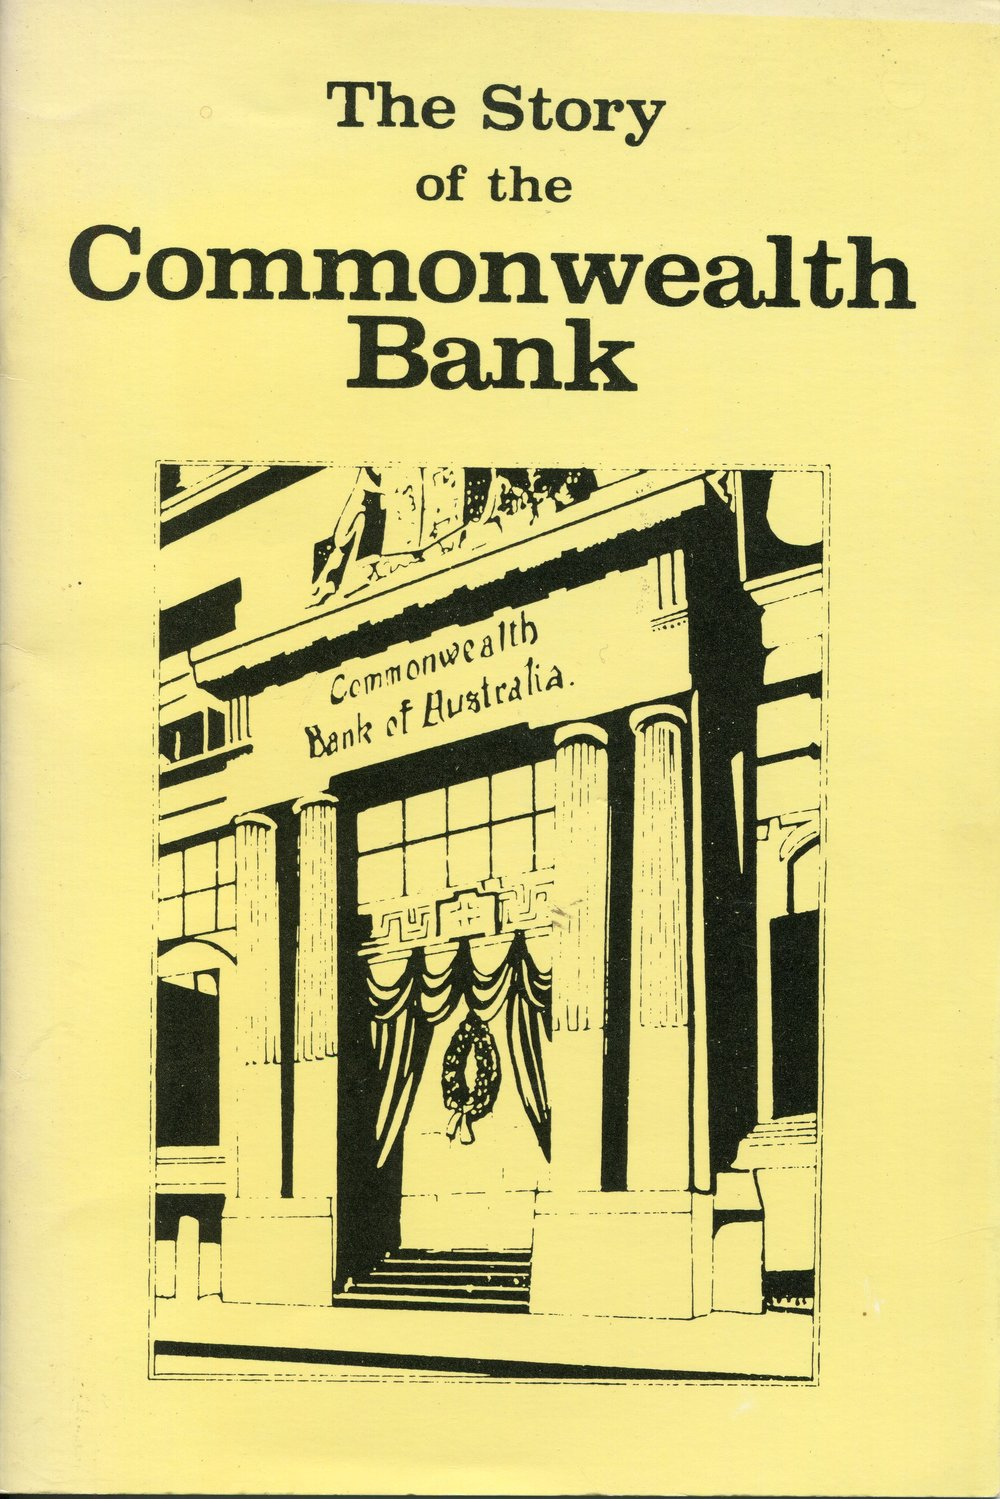 The Story of the Commonwealth Bank.jpg